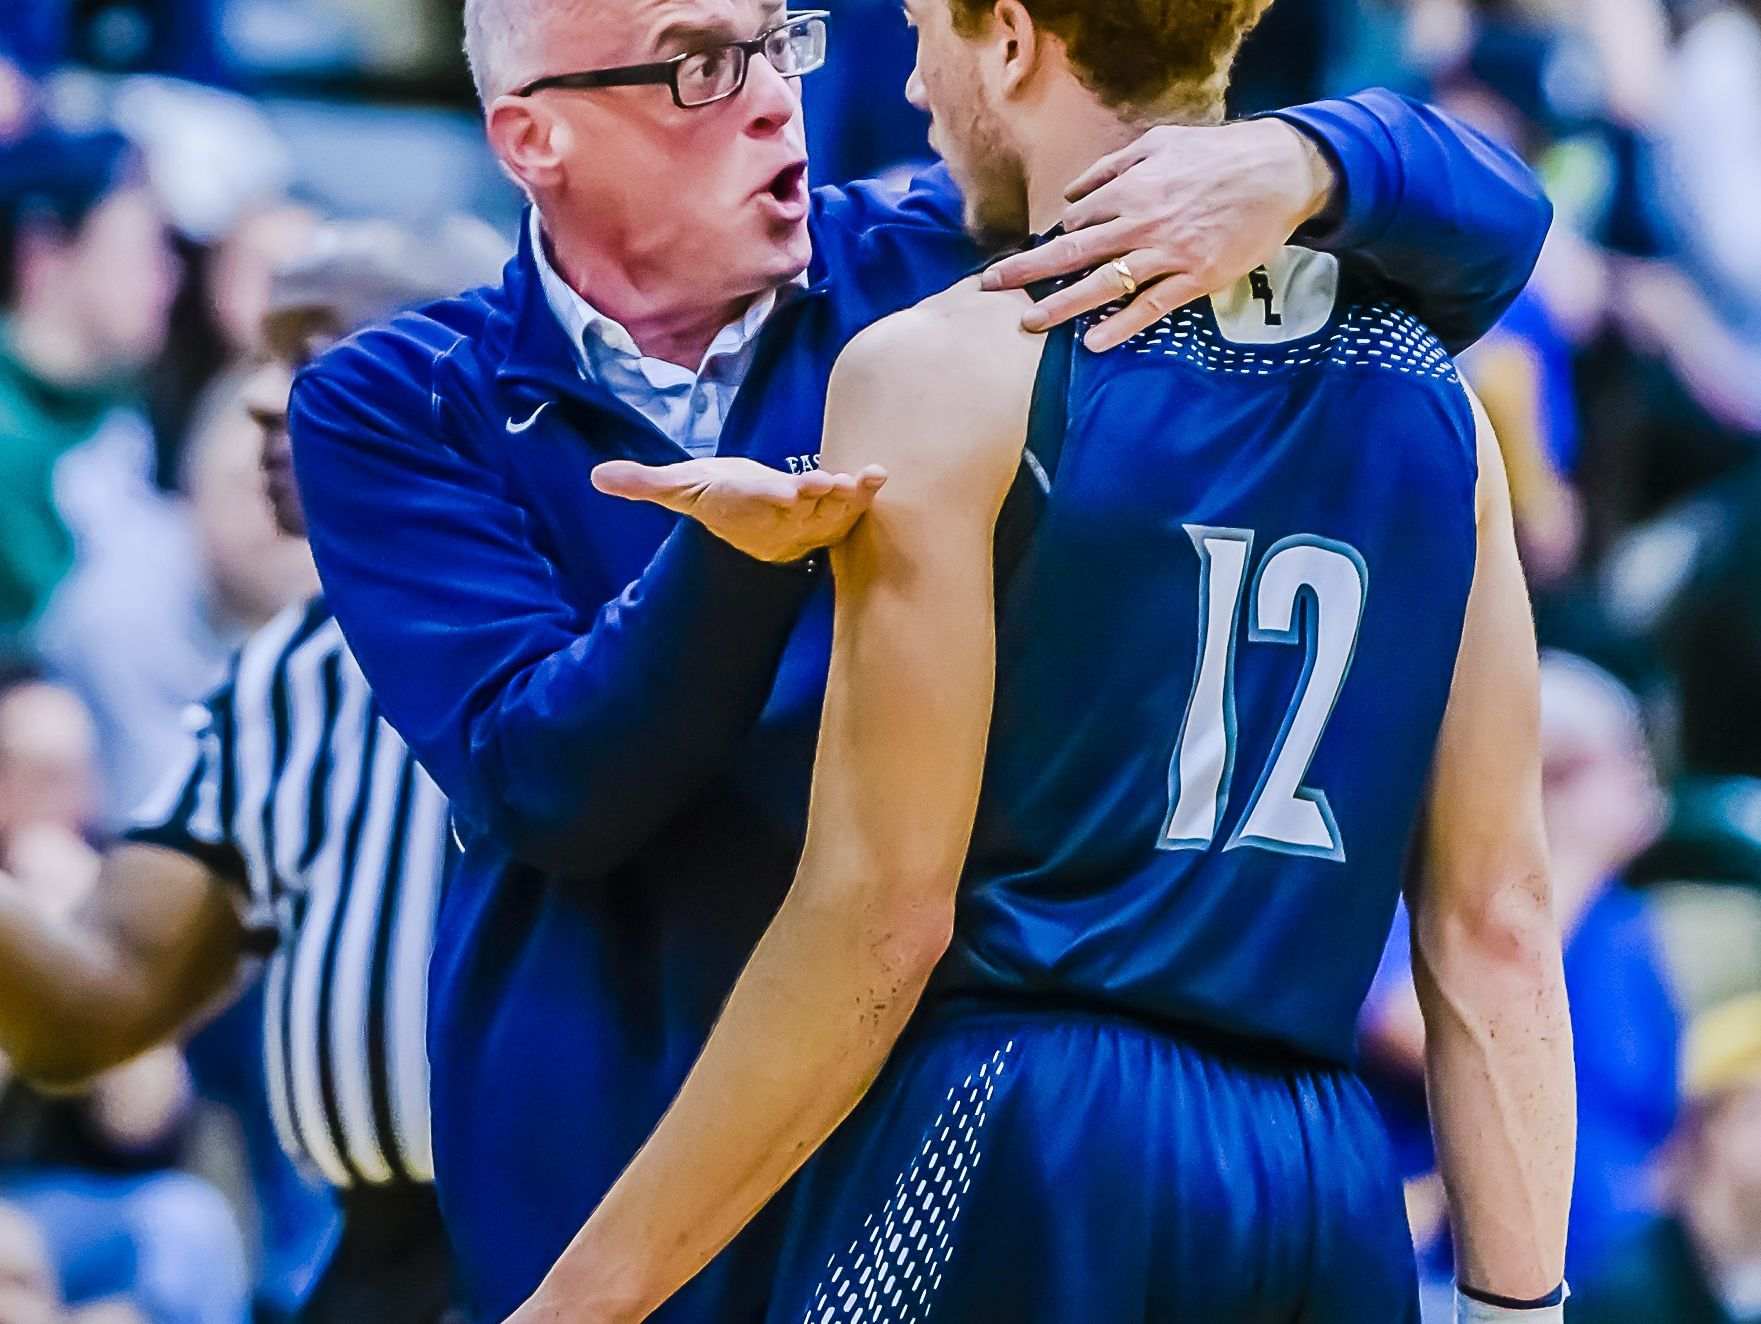 East Lansing boys basketball head coach Steve Finamore, left, speaks with DeAndre' Robinson during a game with Holt last season.